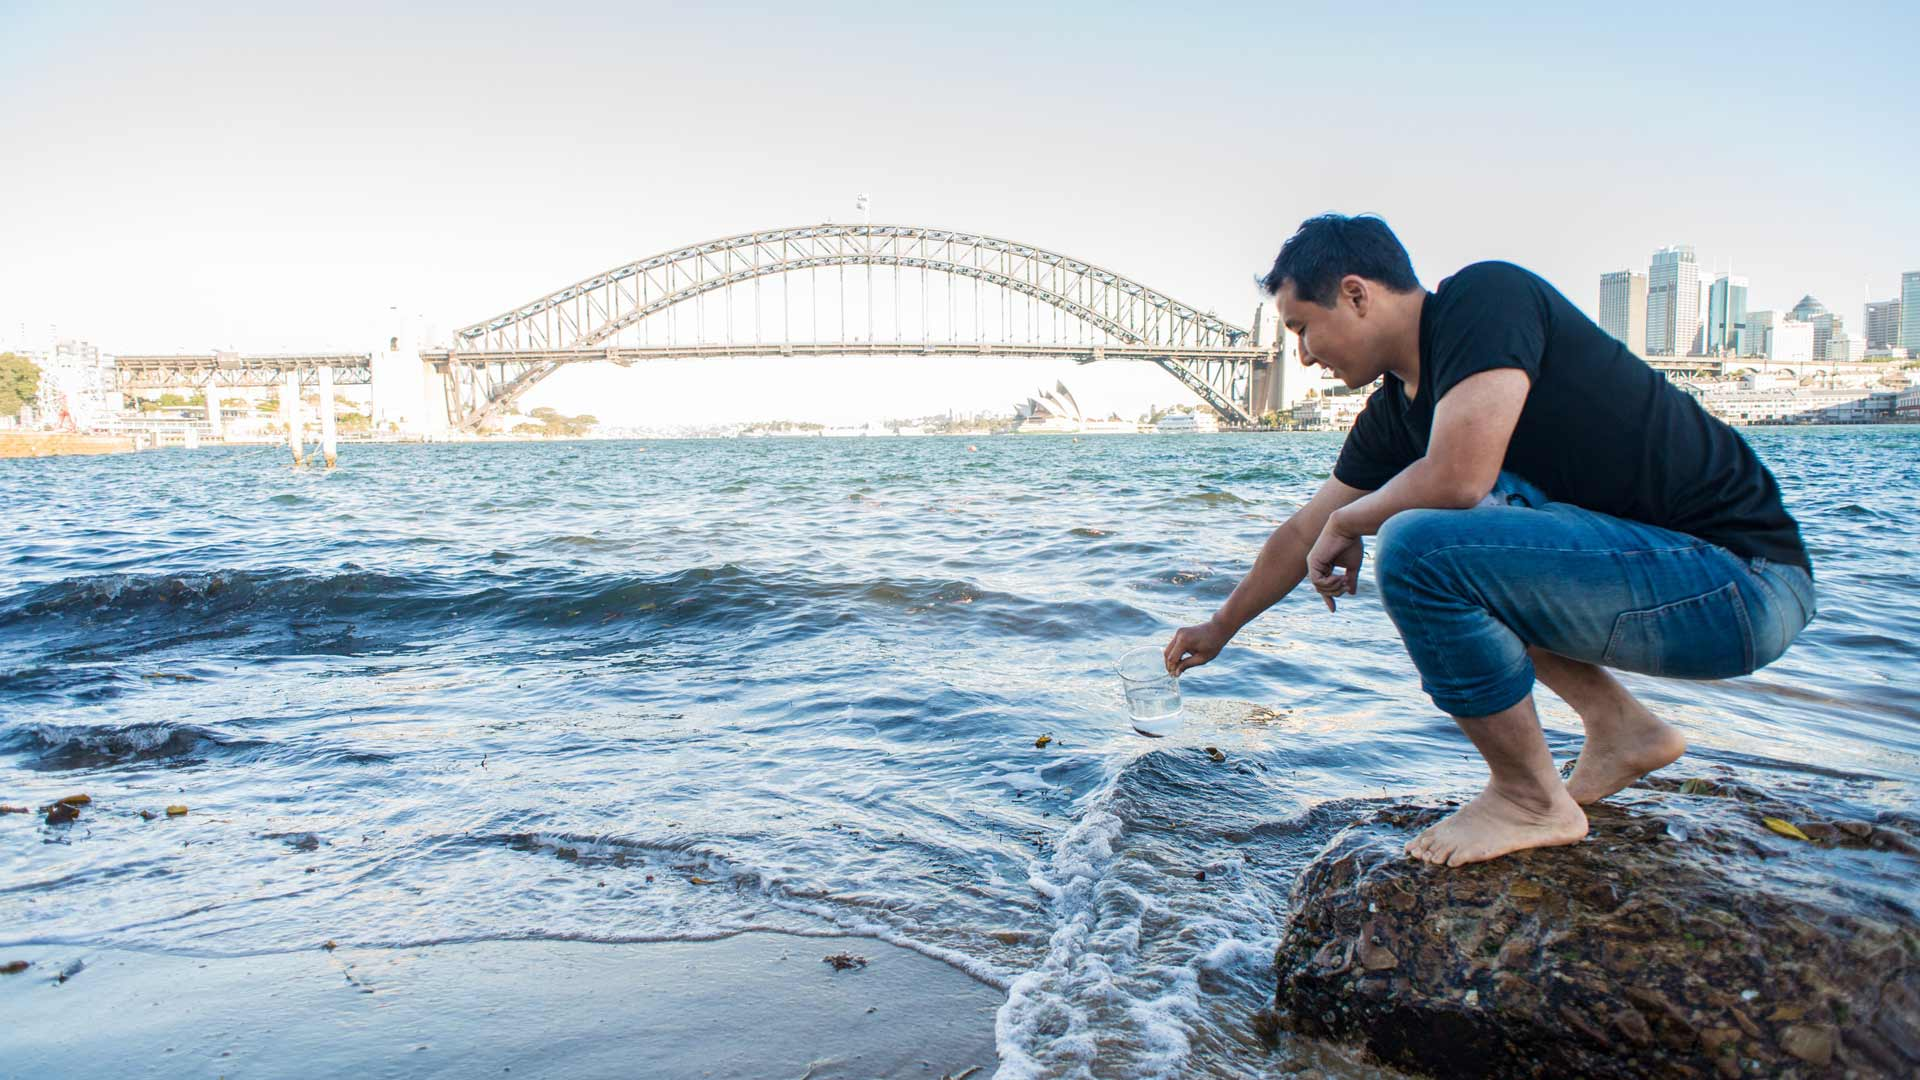 Australian Scientists Have Created a Tiny Filtration Device That Can Make Sydney Harbour Water Drinkable